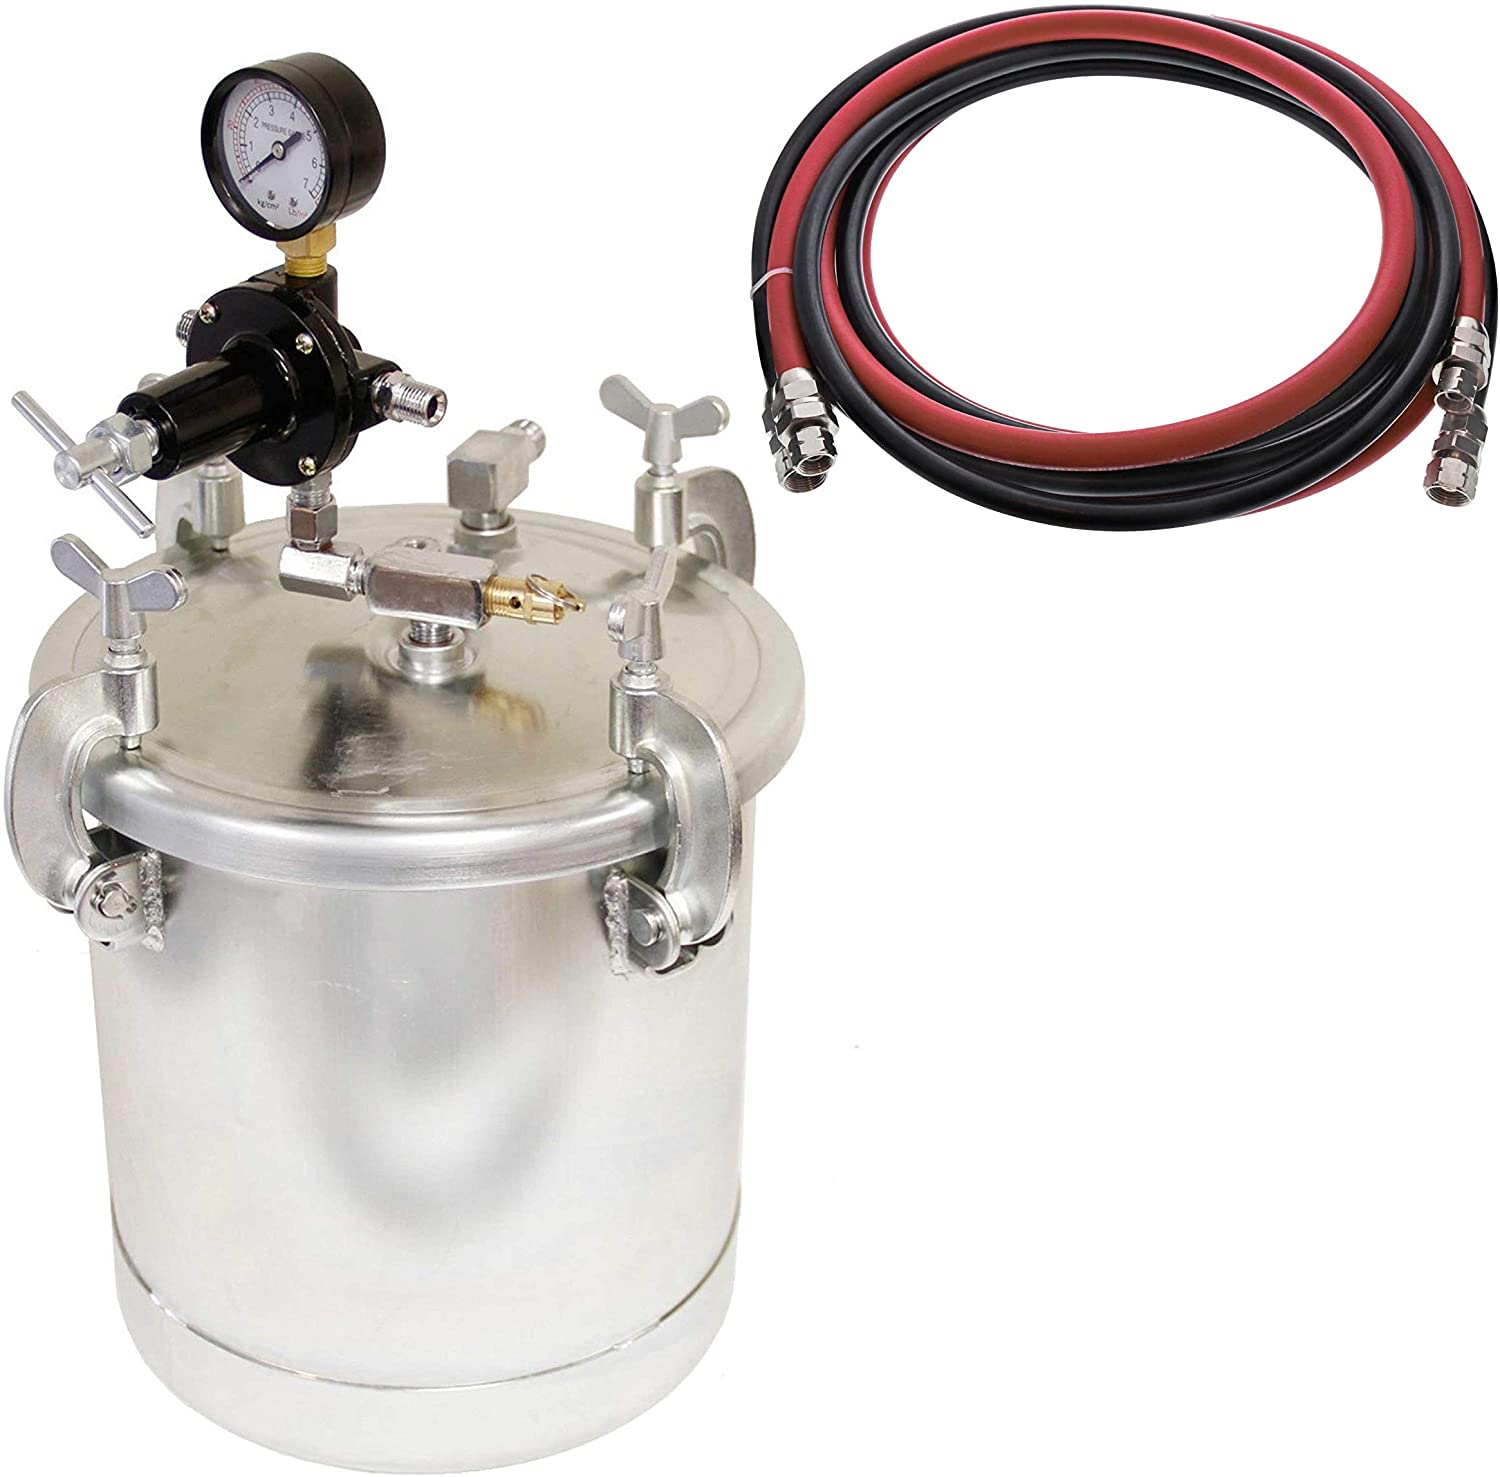 TCP Global Pressure Pot Bundle with 2-1/2 Gallon - (10 Liter) Pressure Pot Paint Tank with Regulator & Master Pro Series 12 Foot Air & Fluid Hose Assembly Set with Fittings